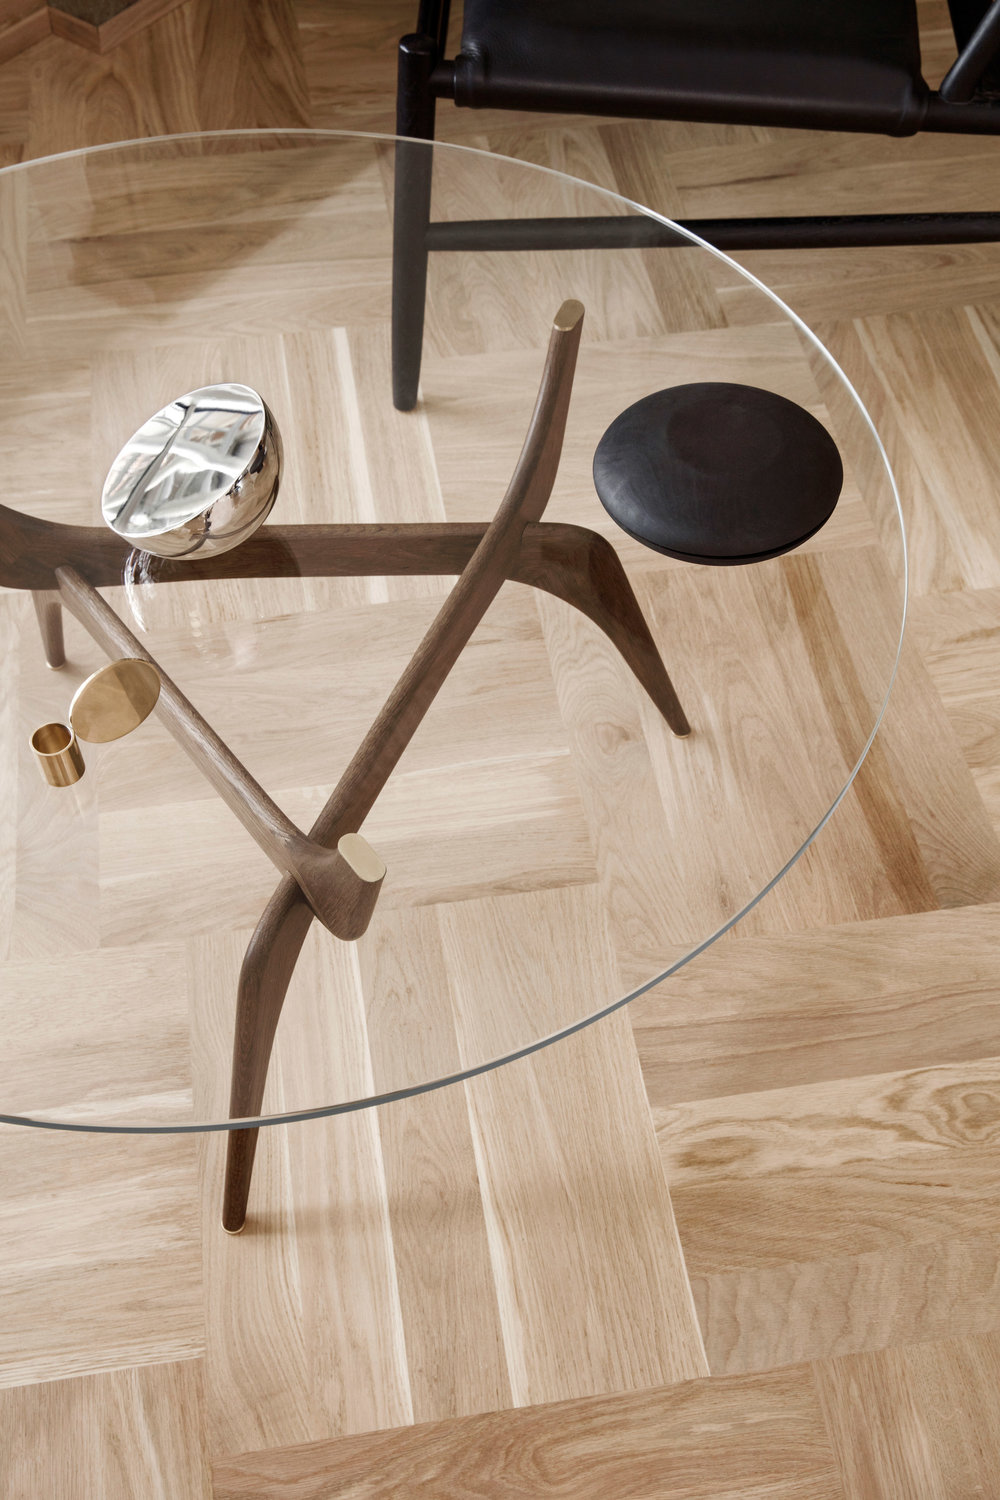 triiio-tables-hans-bolling-brdr-kruger-design-furniture_dezeen_2364_col_0.jpg